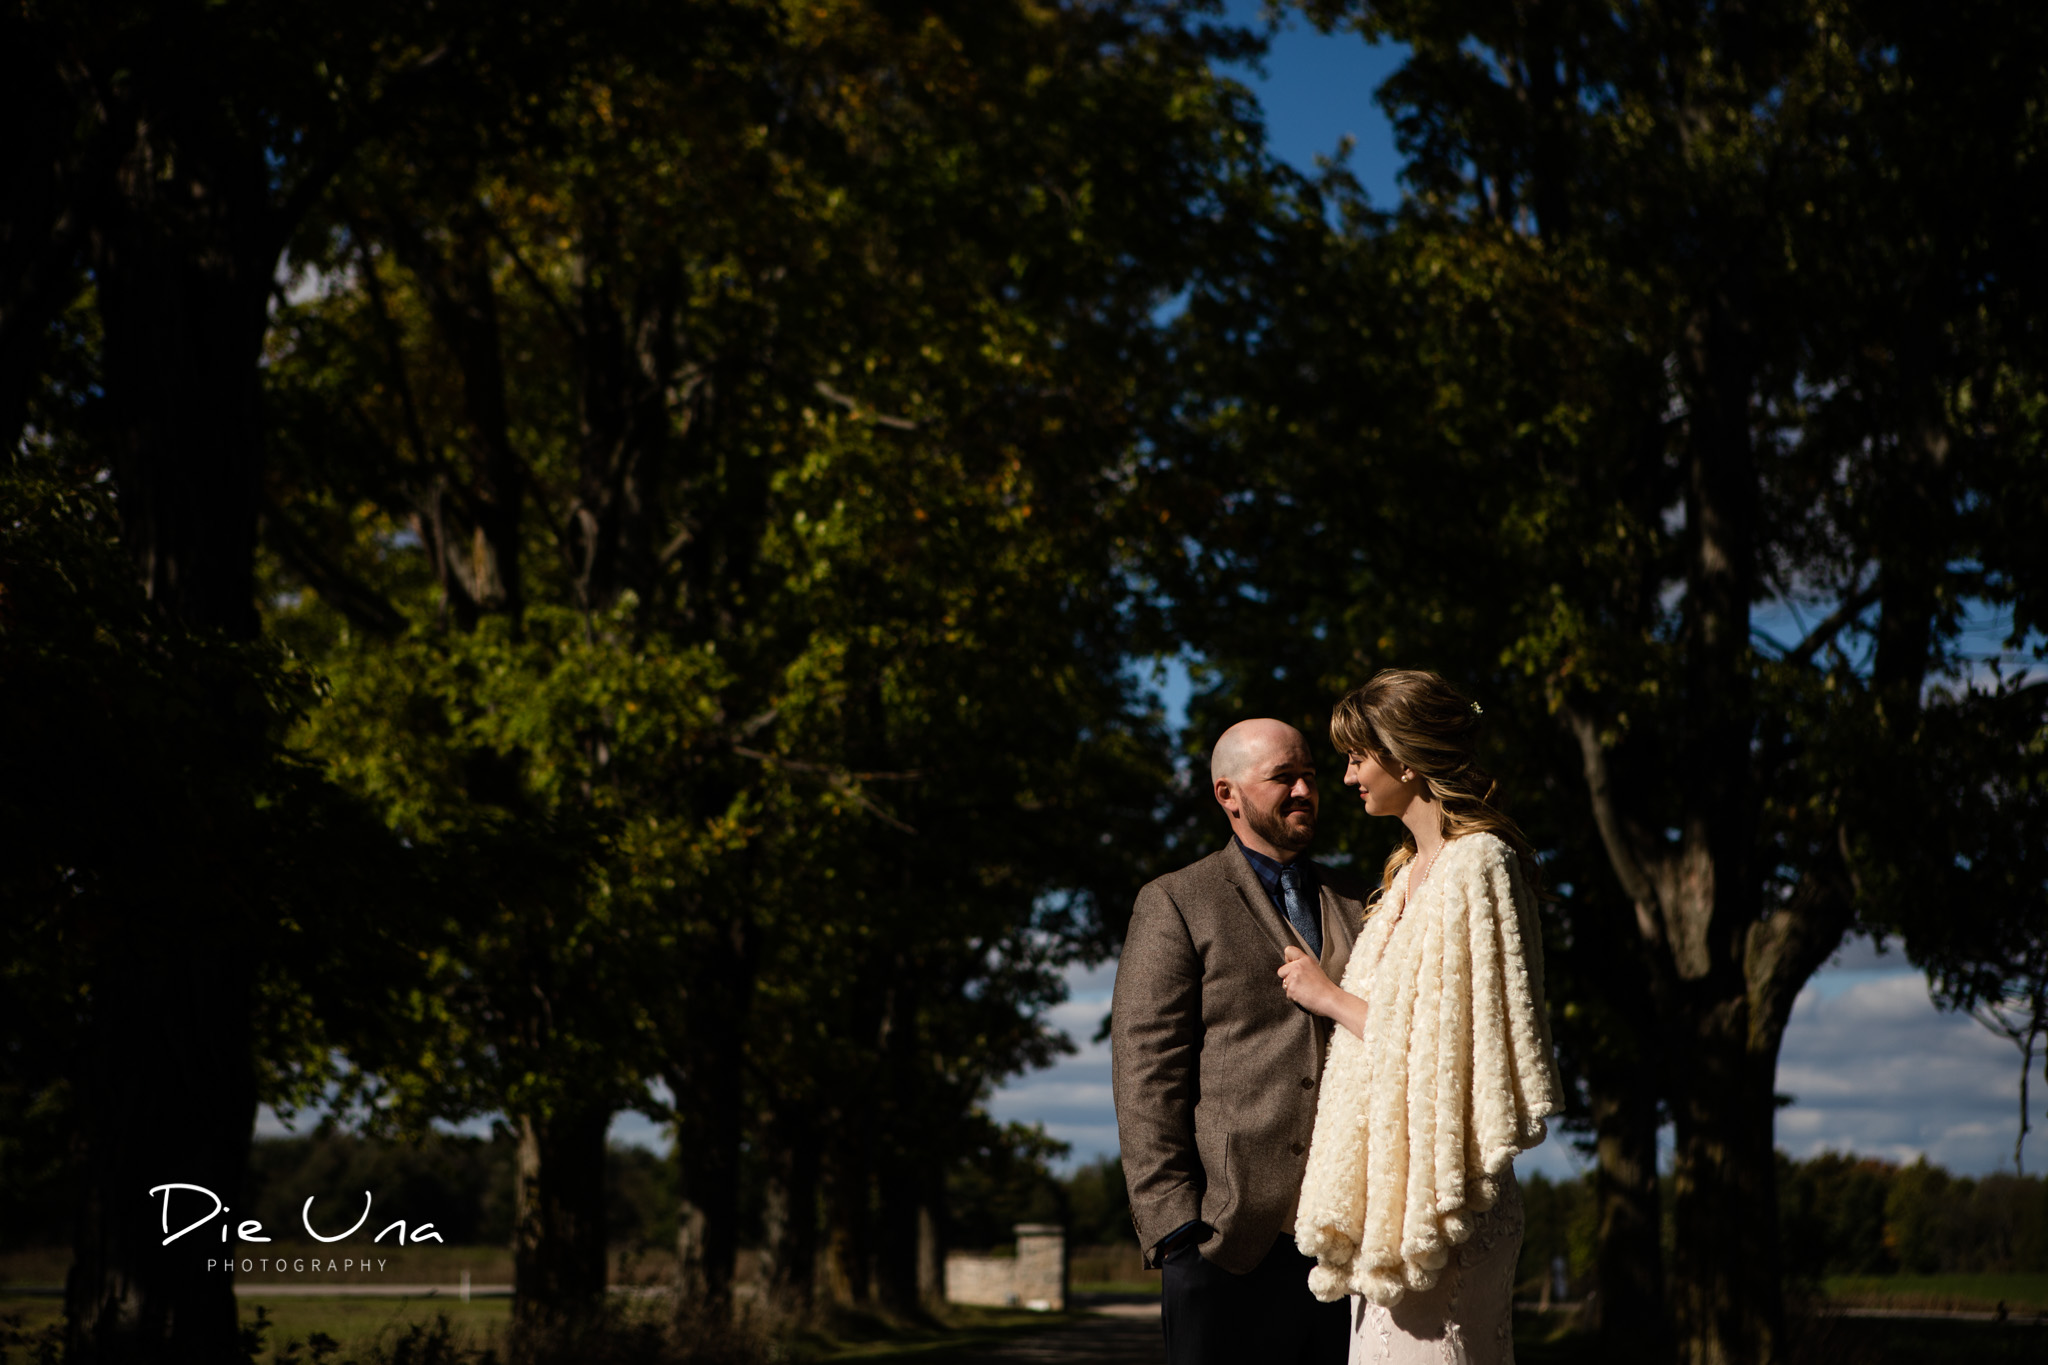 harsh light bride and groom wedding portraits with trees in the background.jpg